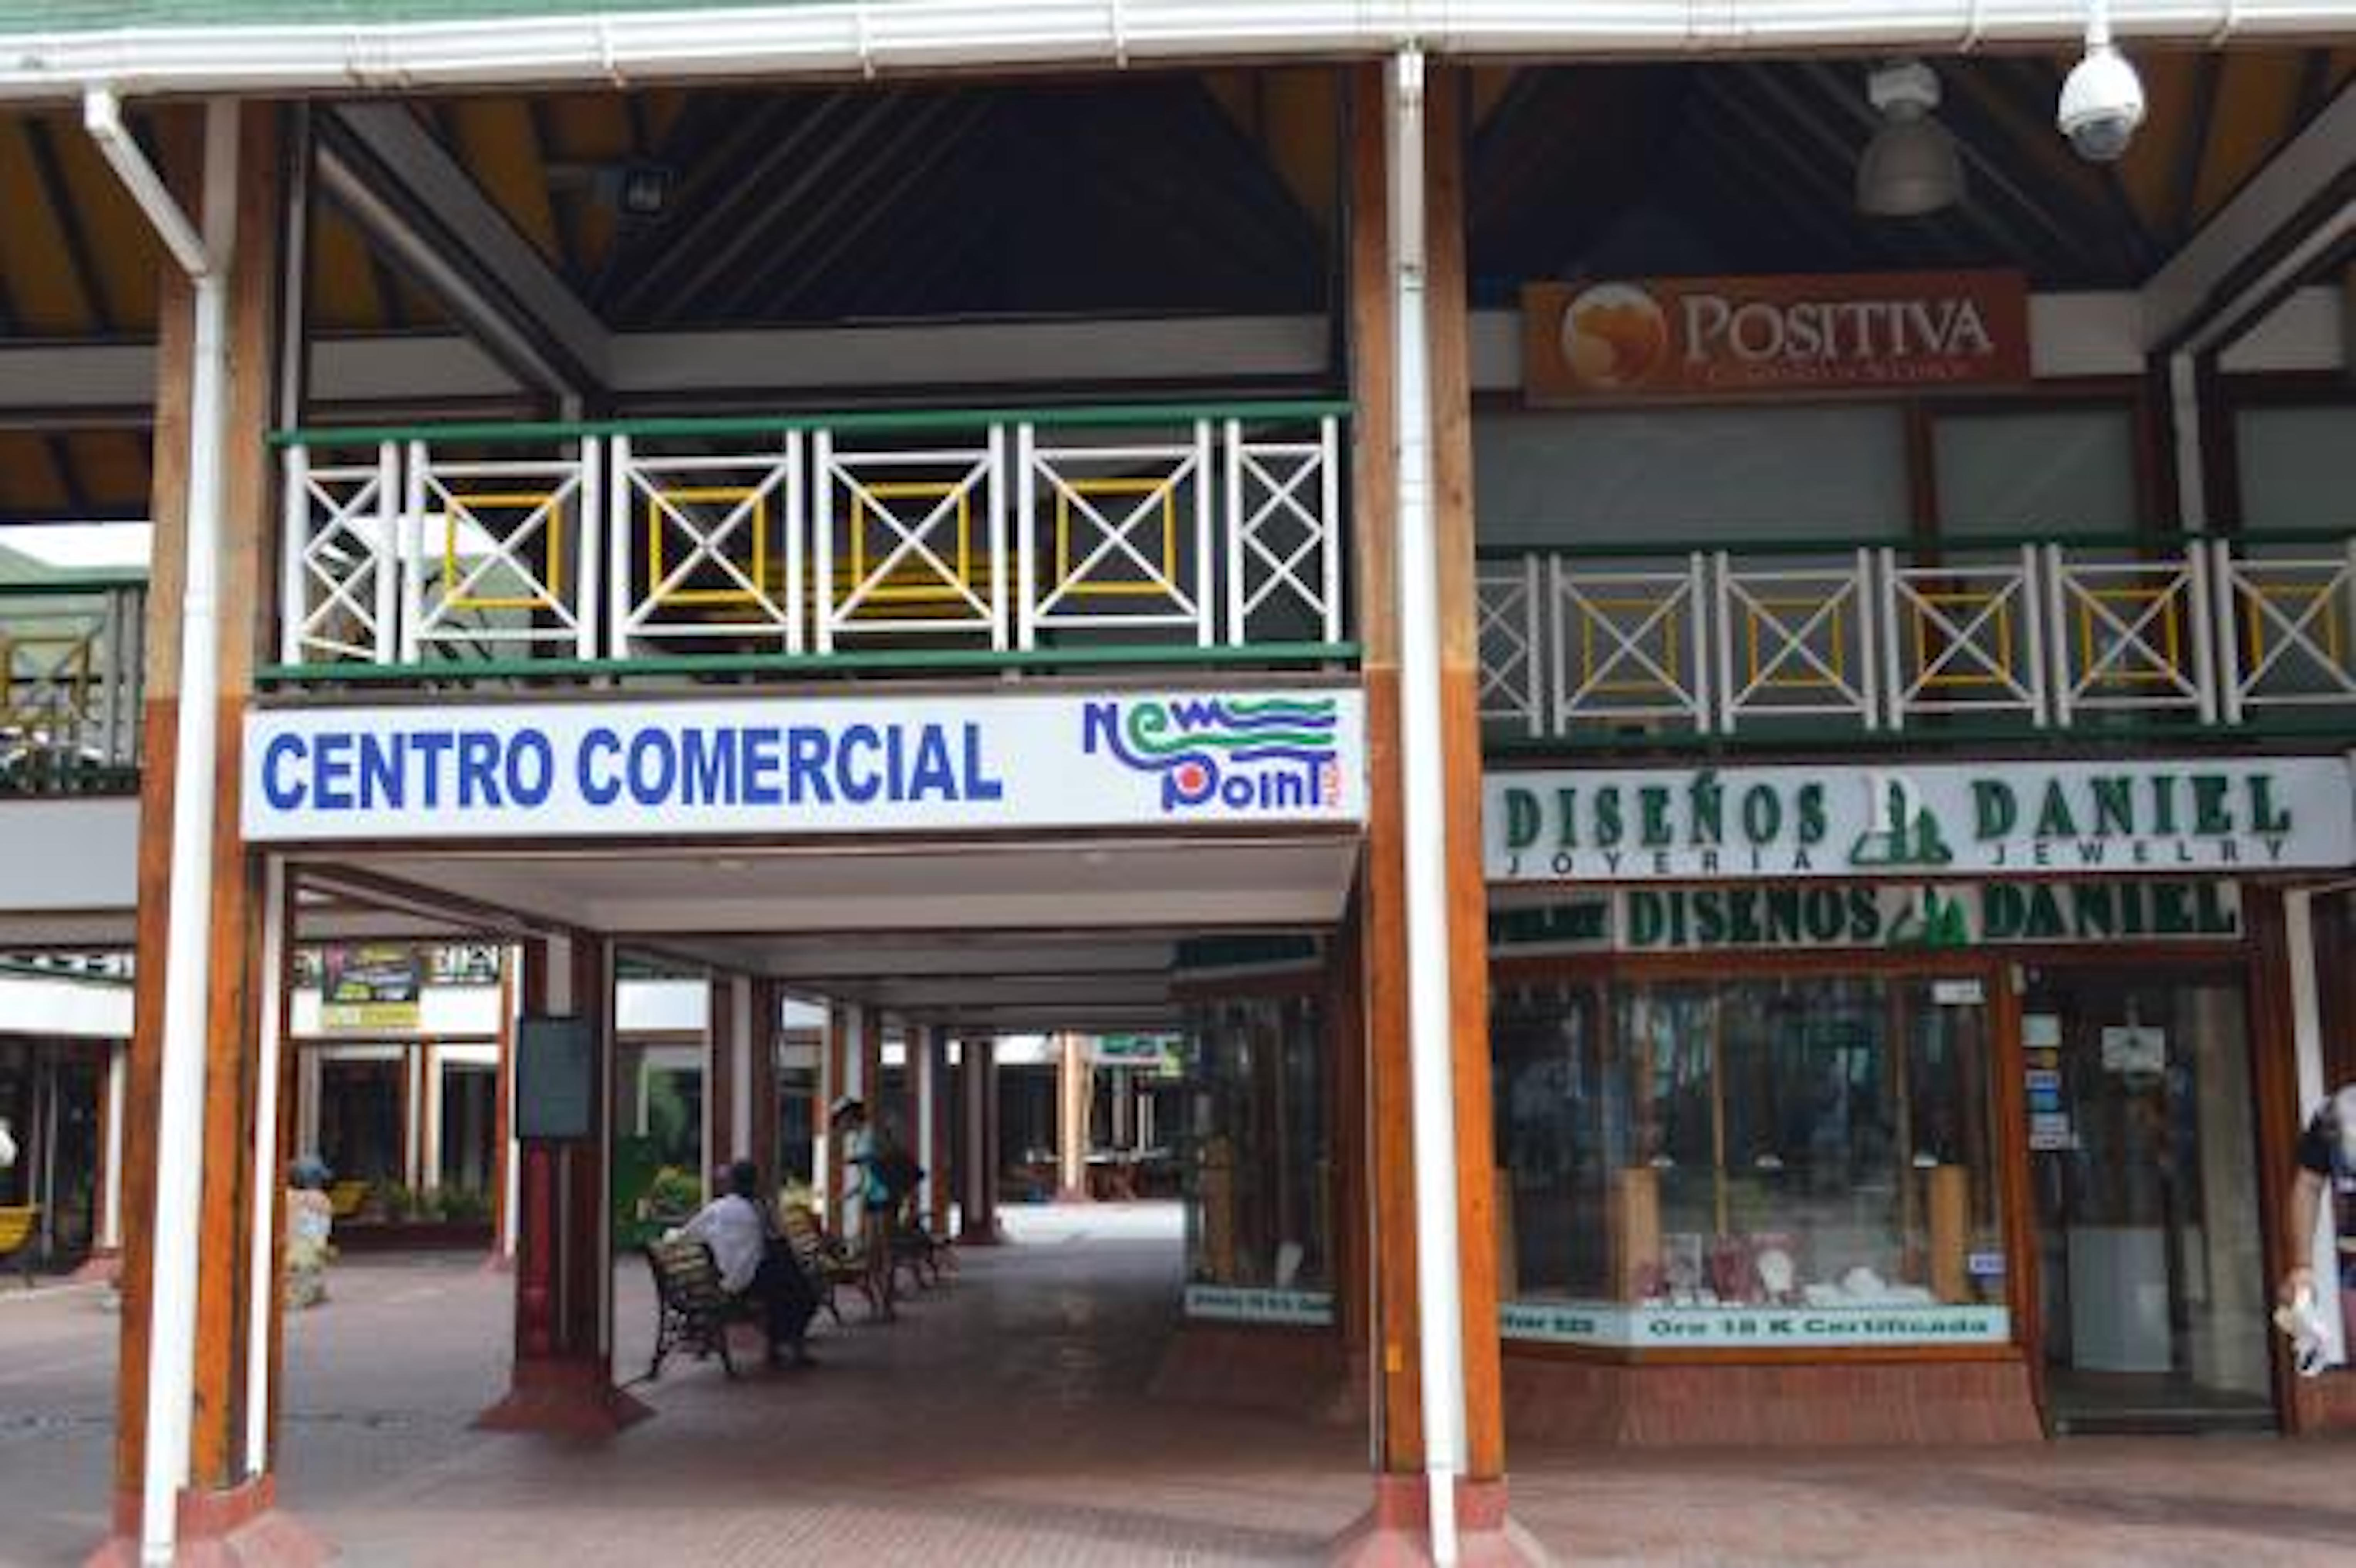 Centro Comercial New Point em San Andrés